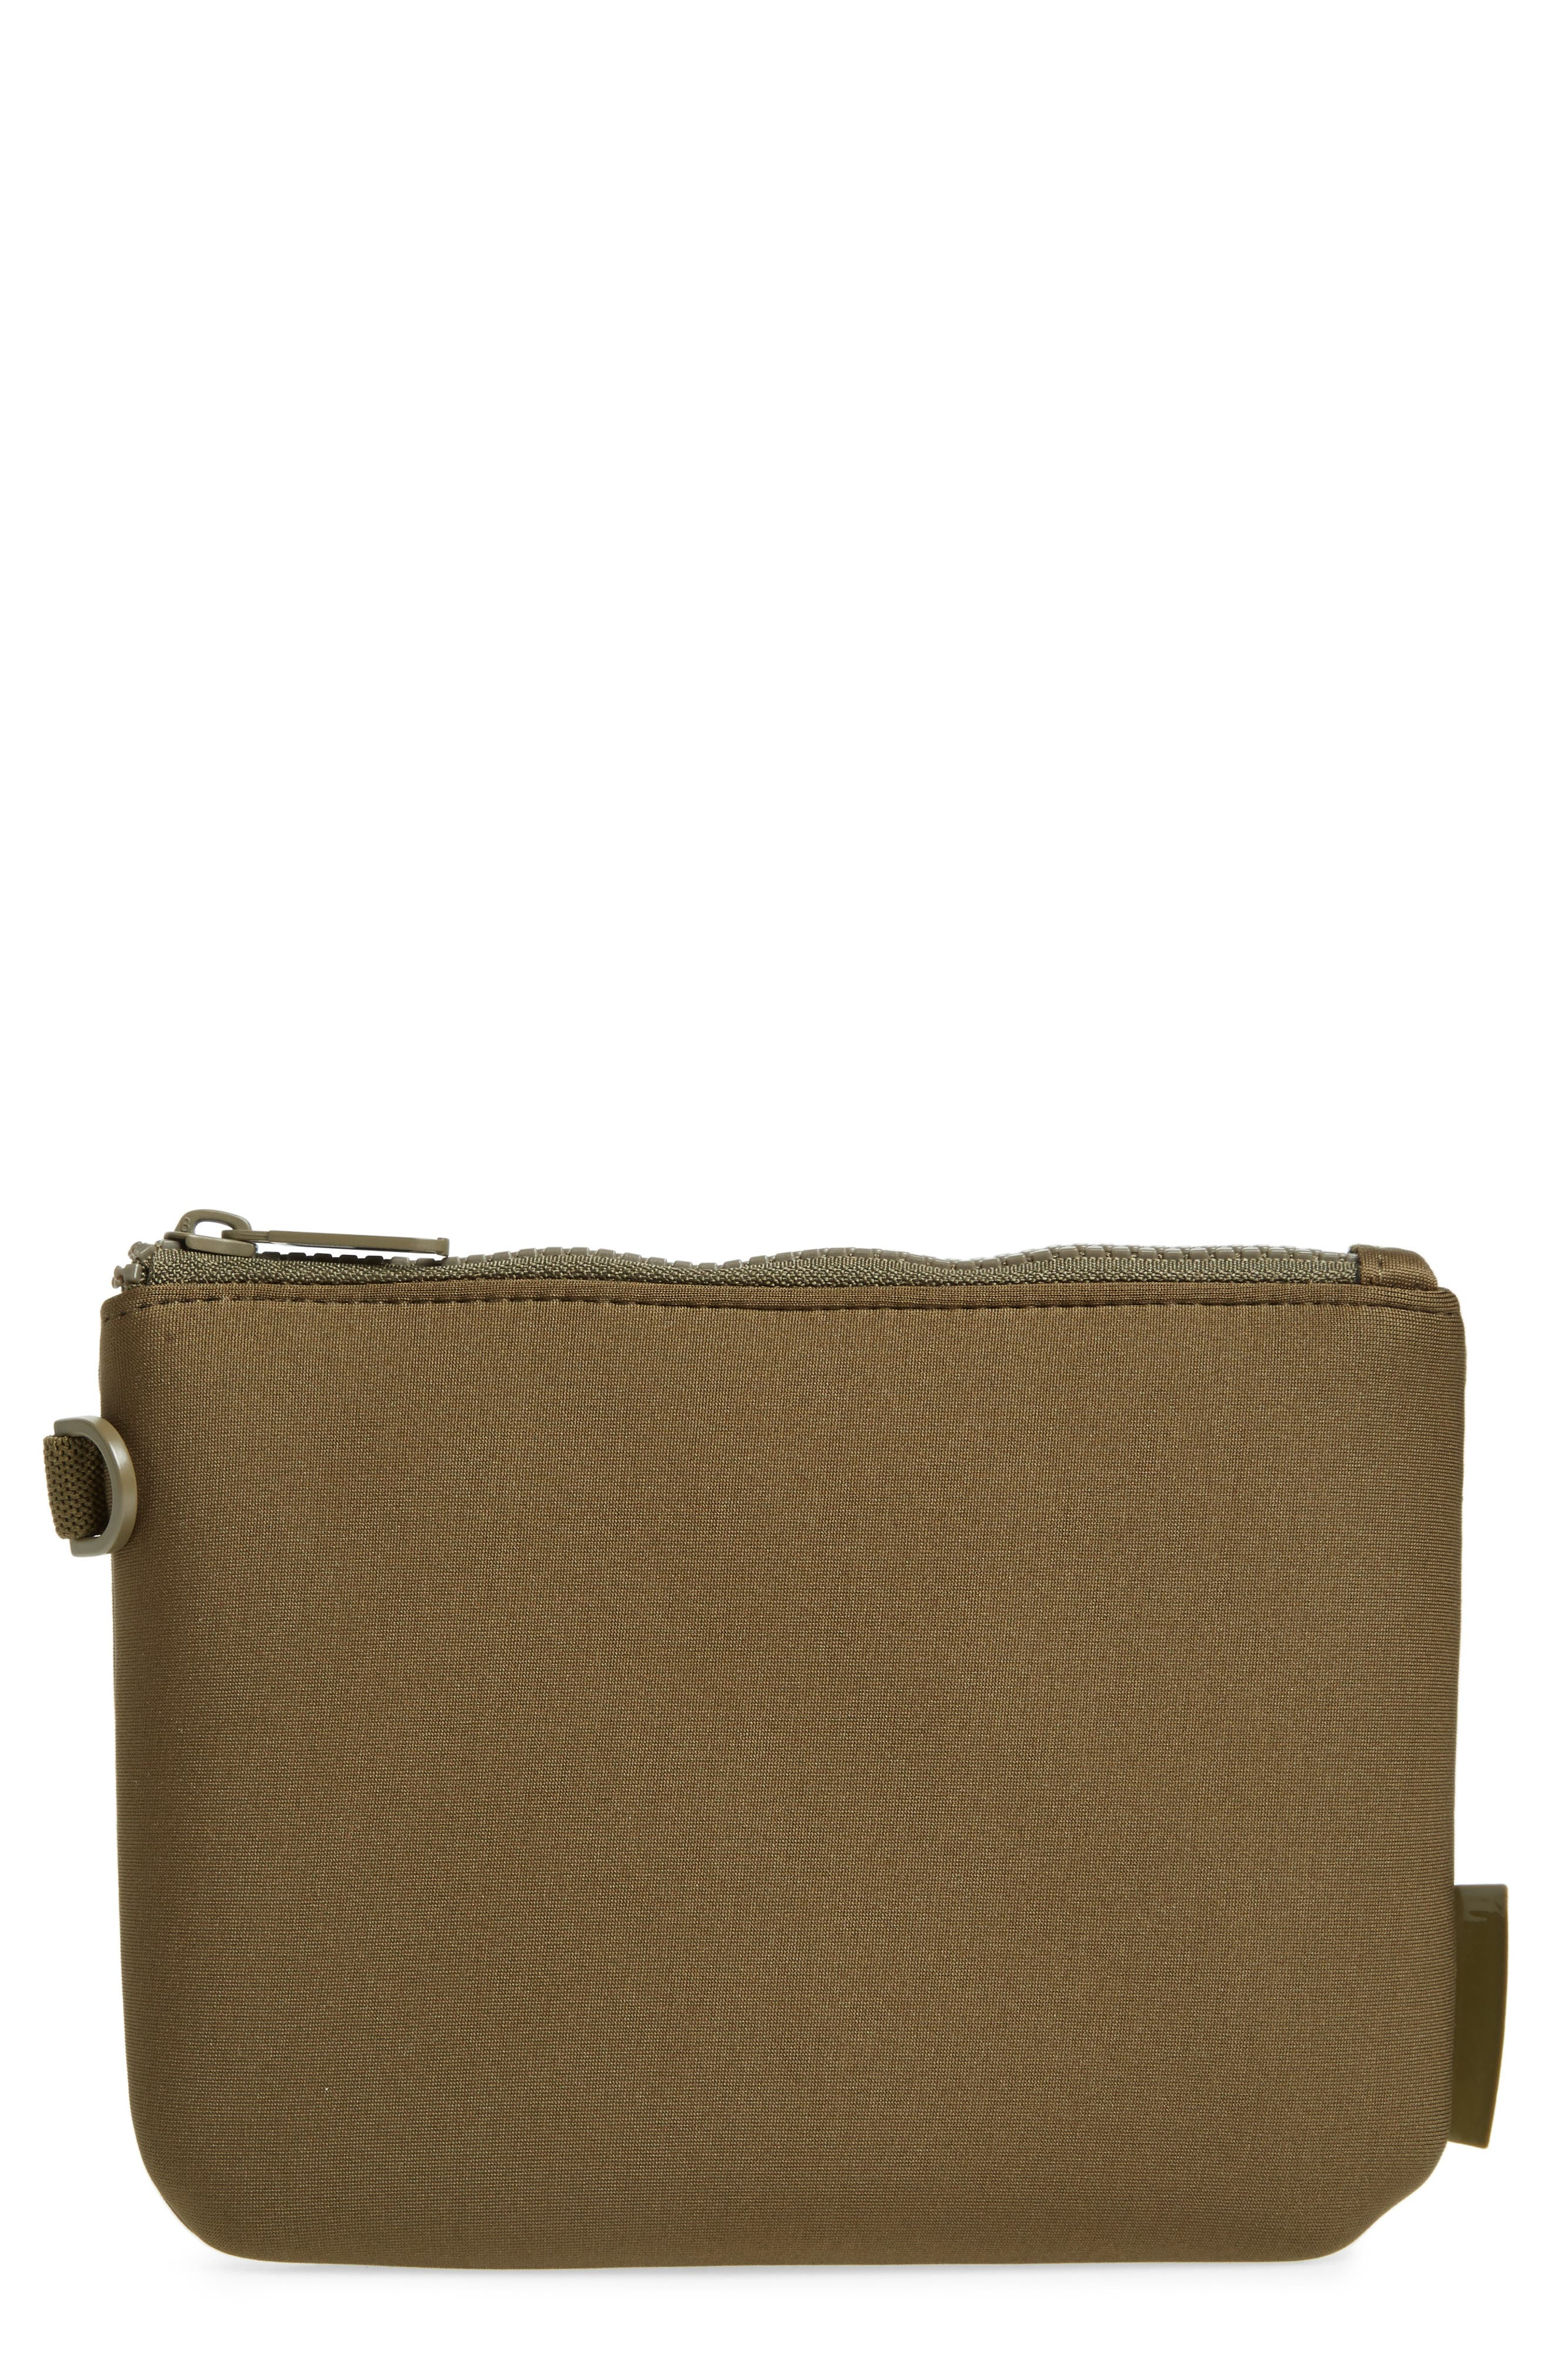 DAGNE DOVER Scout Small Zip Top Pouch - Green in Dark Moss